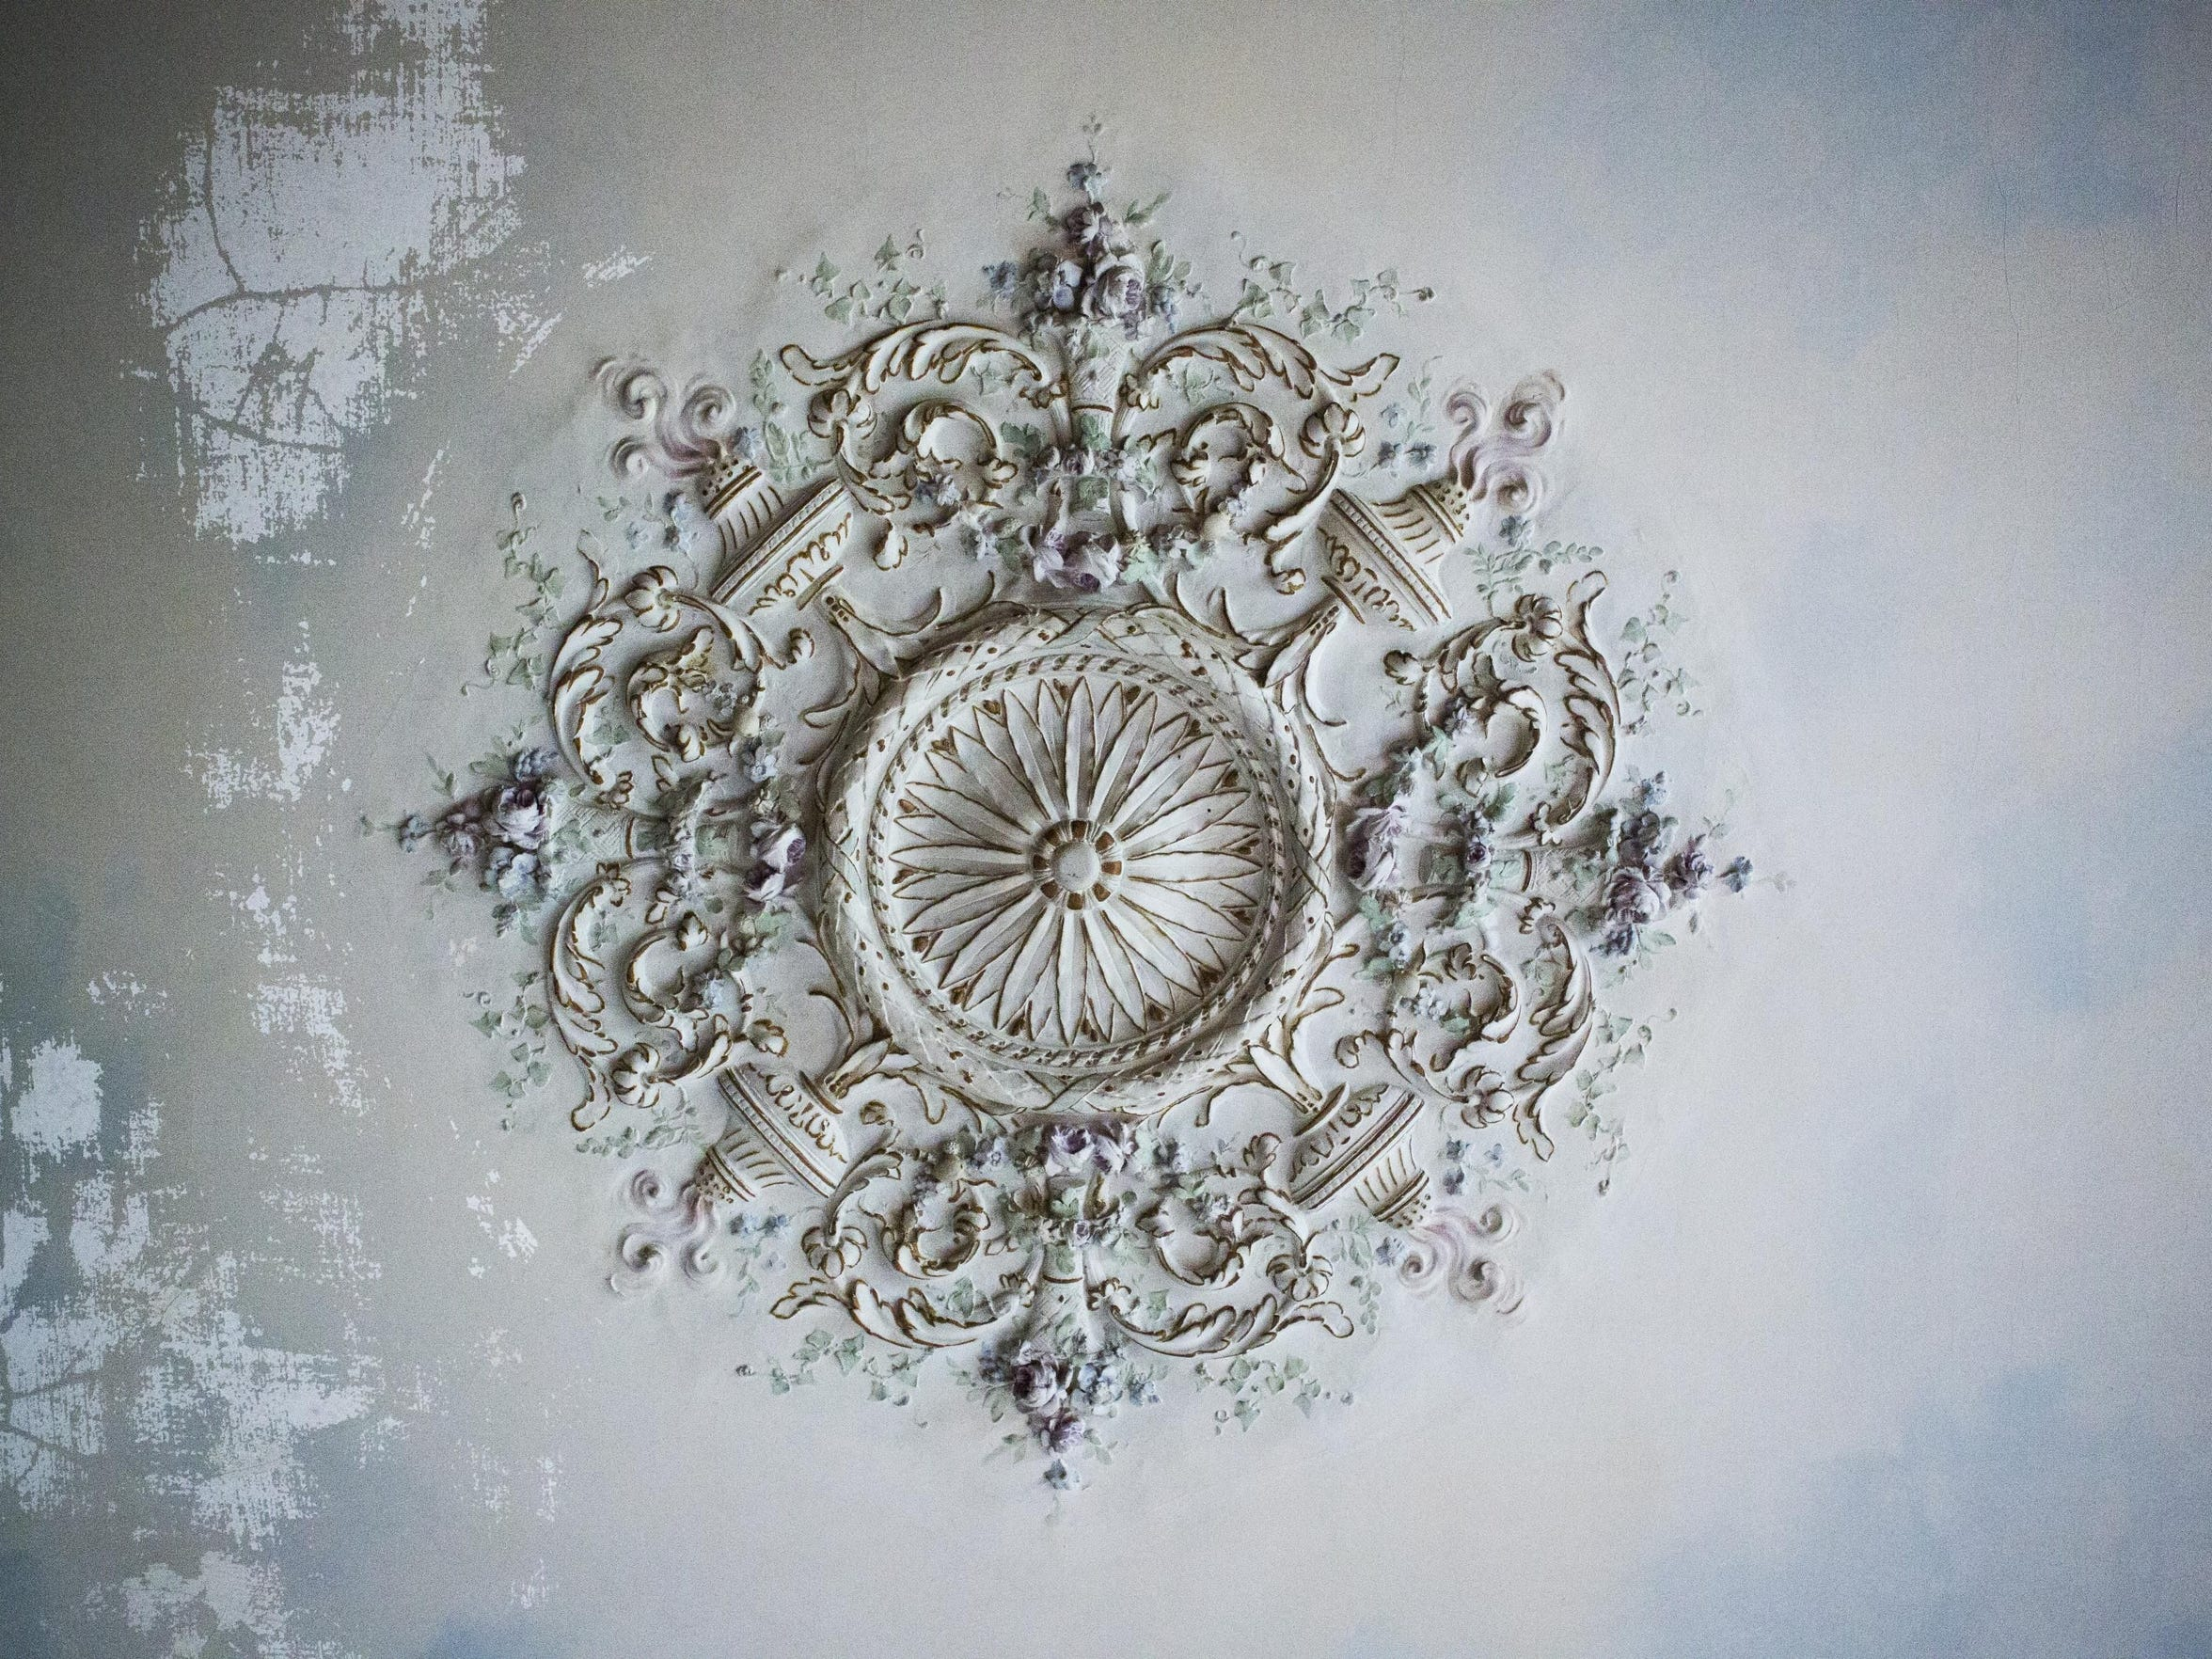 An intricately designed ceiling piece is on display